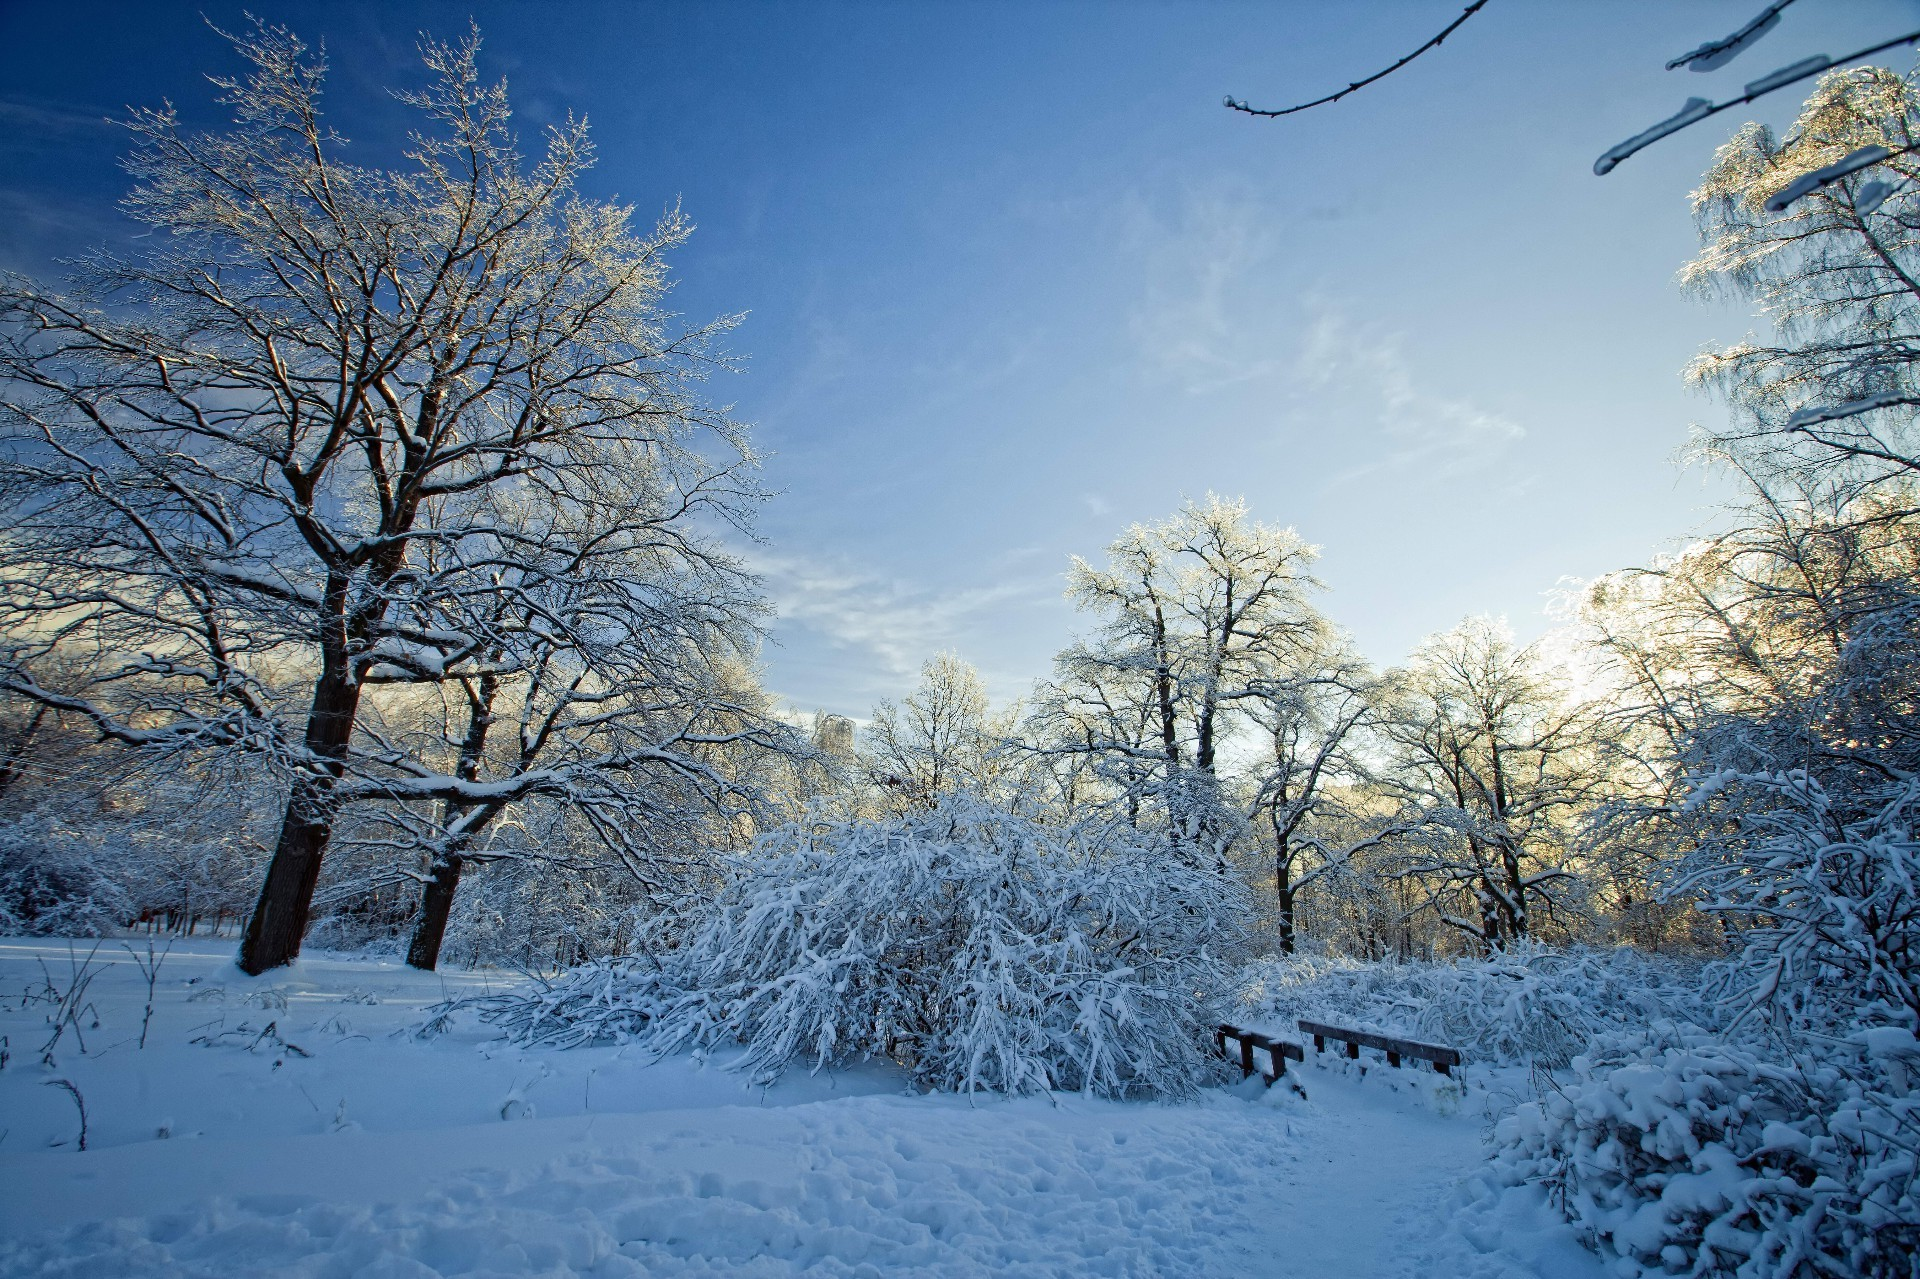 winter snow frost cold tree frozen wood landscape ice weather season branch snow-white scenic frosty nature fair weather icy scene